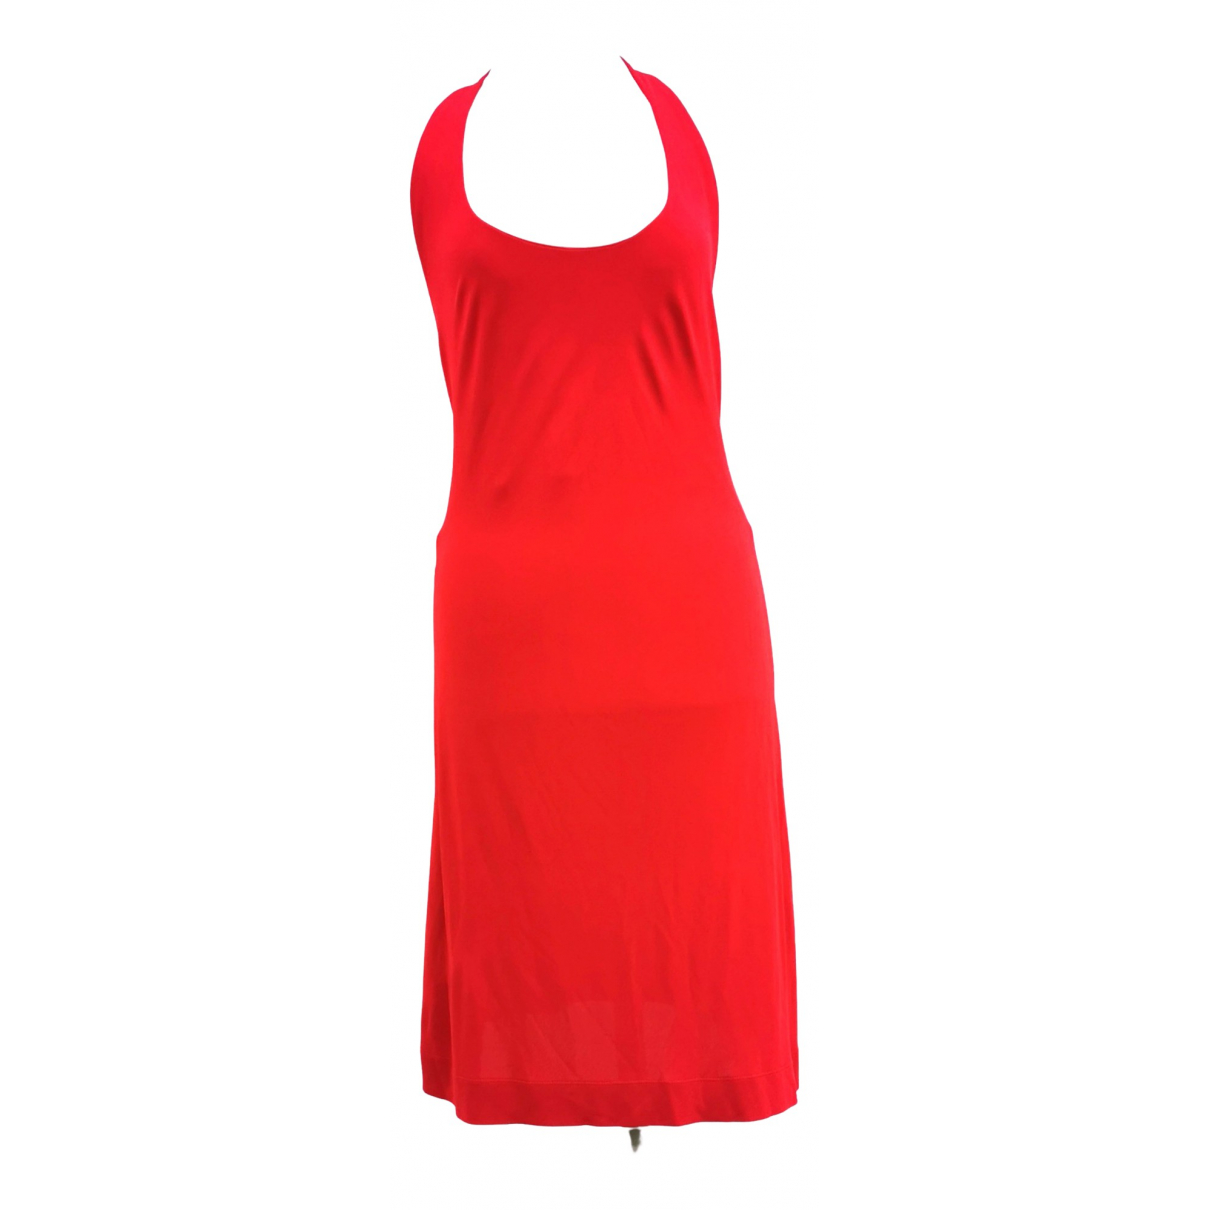 Red Valentino Garavani \N Red dress for Women 42 IT